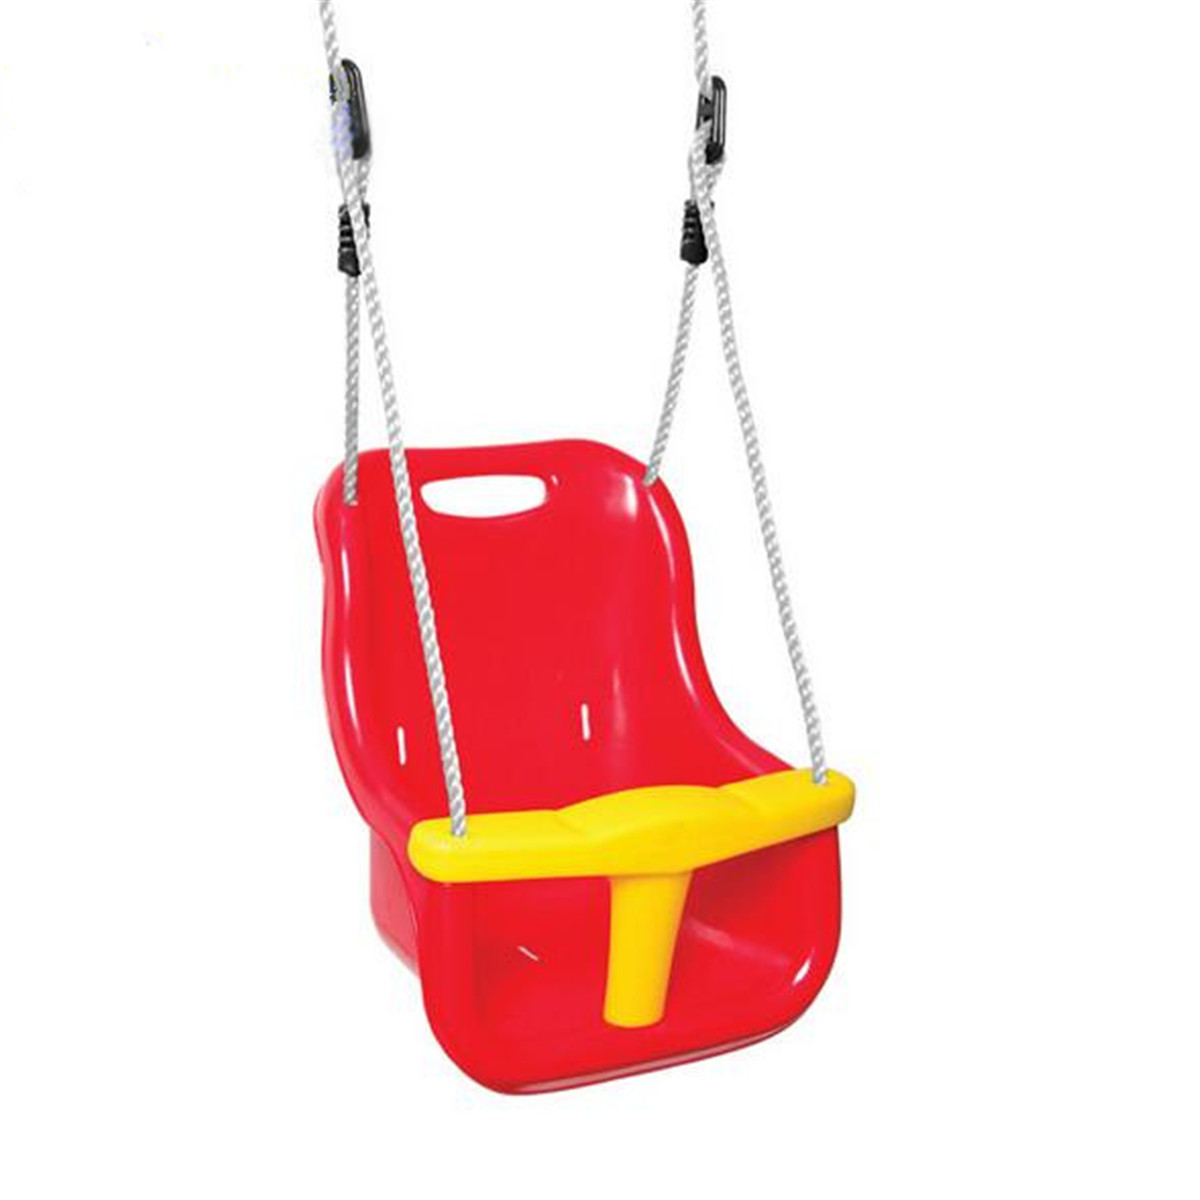 3-in-1 Indoor Outdoor Safe Healthy Swing For Kids Toys For Children Baby High Back PE Plastic Basket Fun Crazy Games